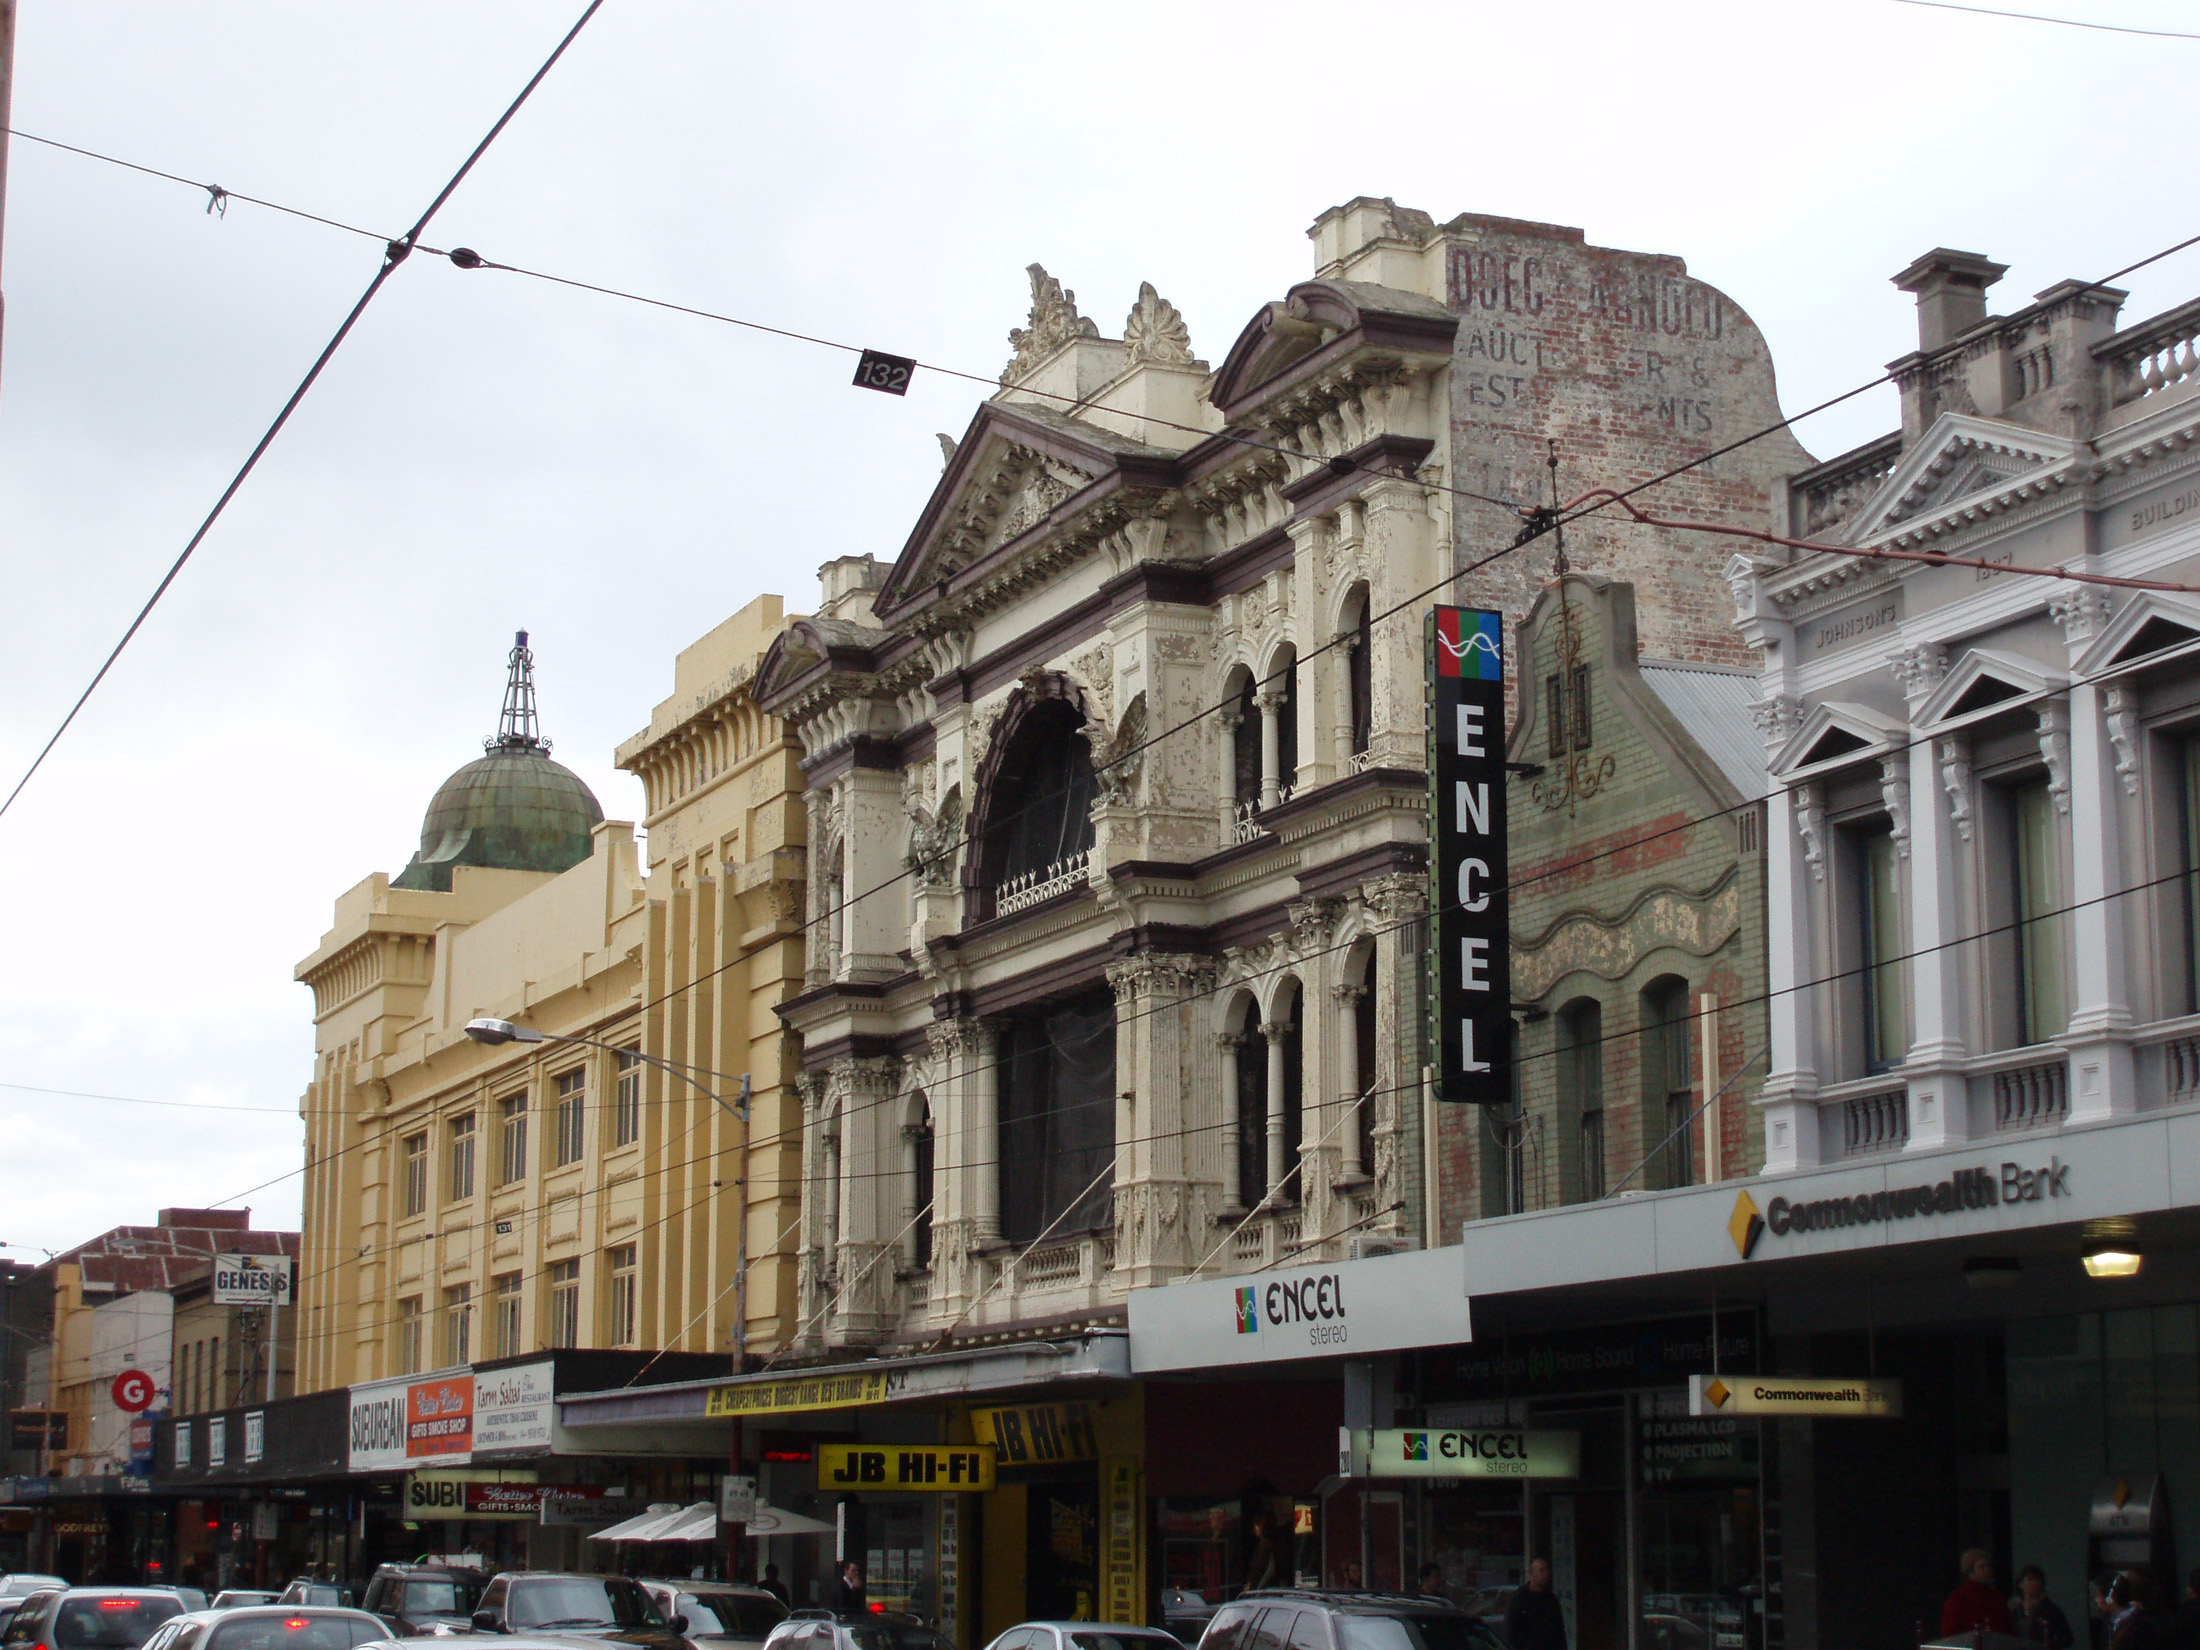 Famous Historic Architectural Built Structures of Market Arcade at South Yarra in Melbourne Australia.